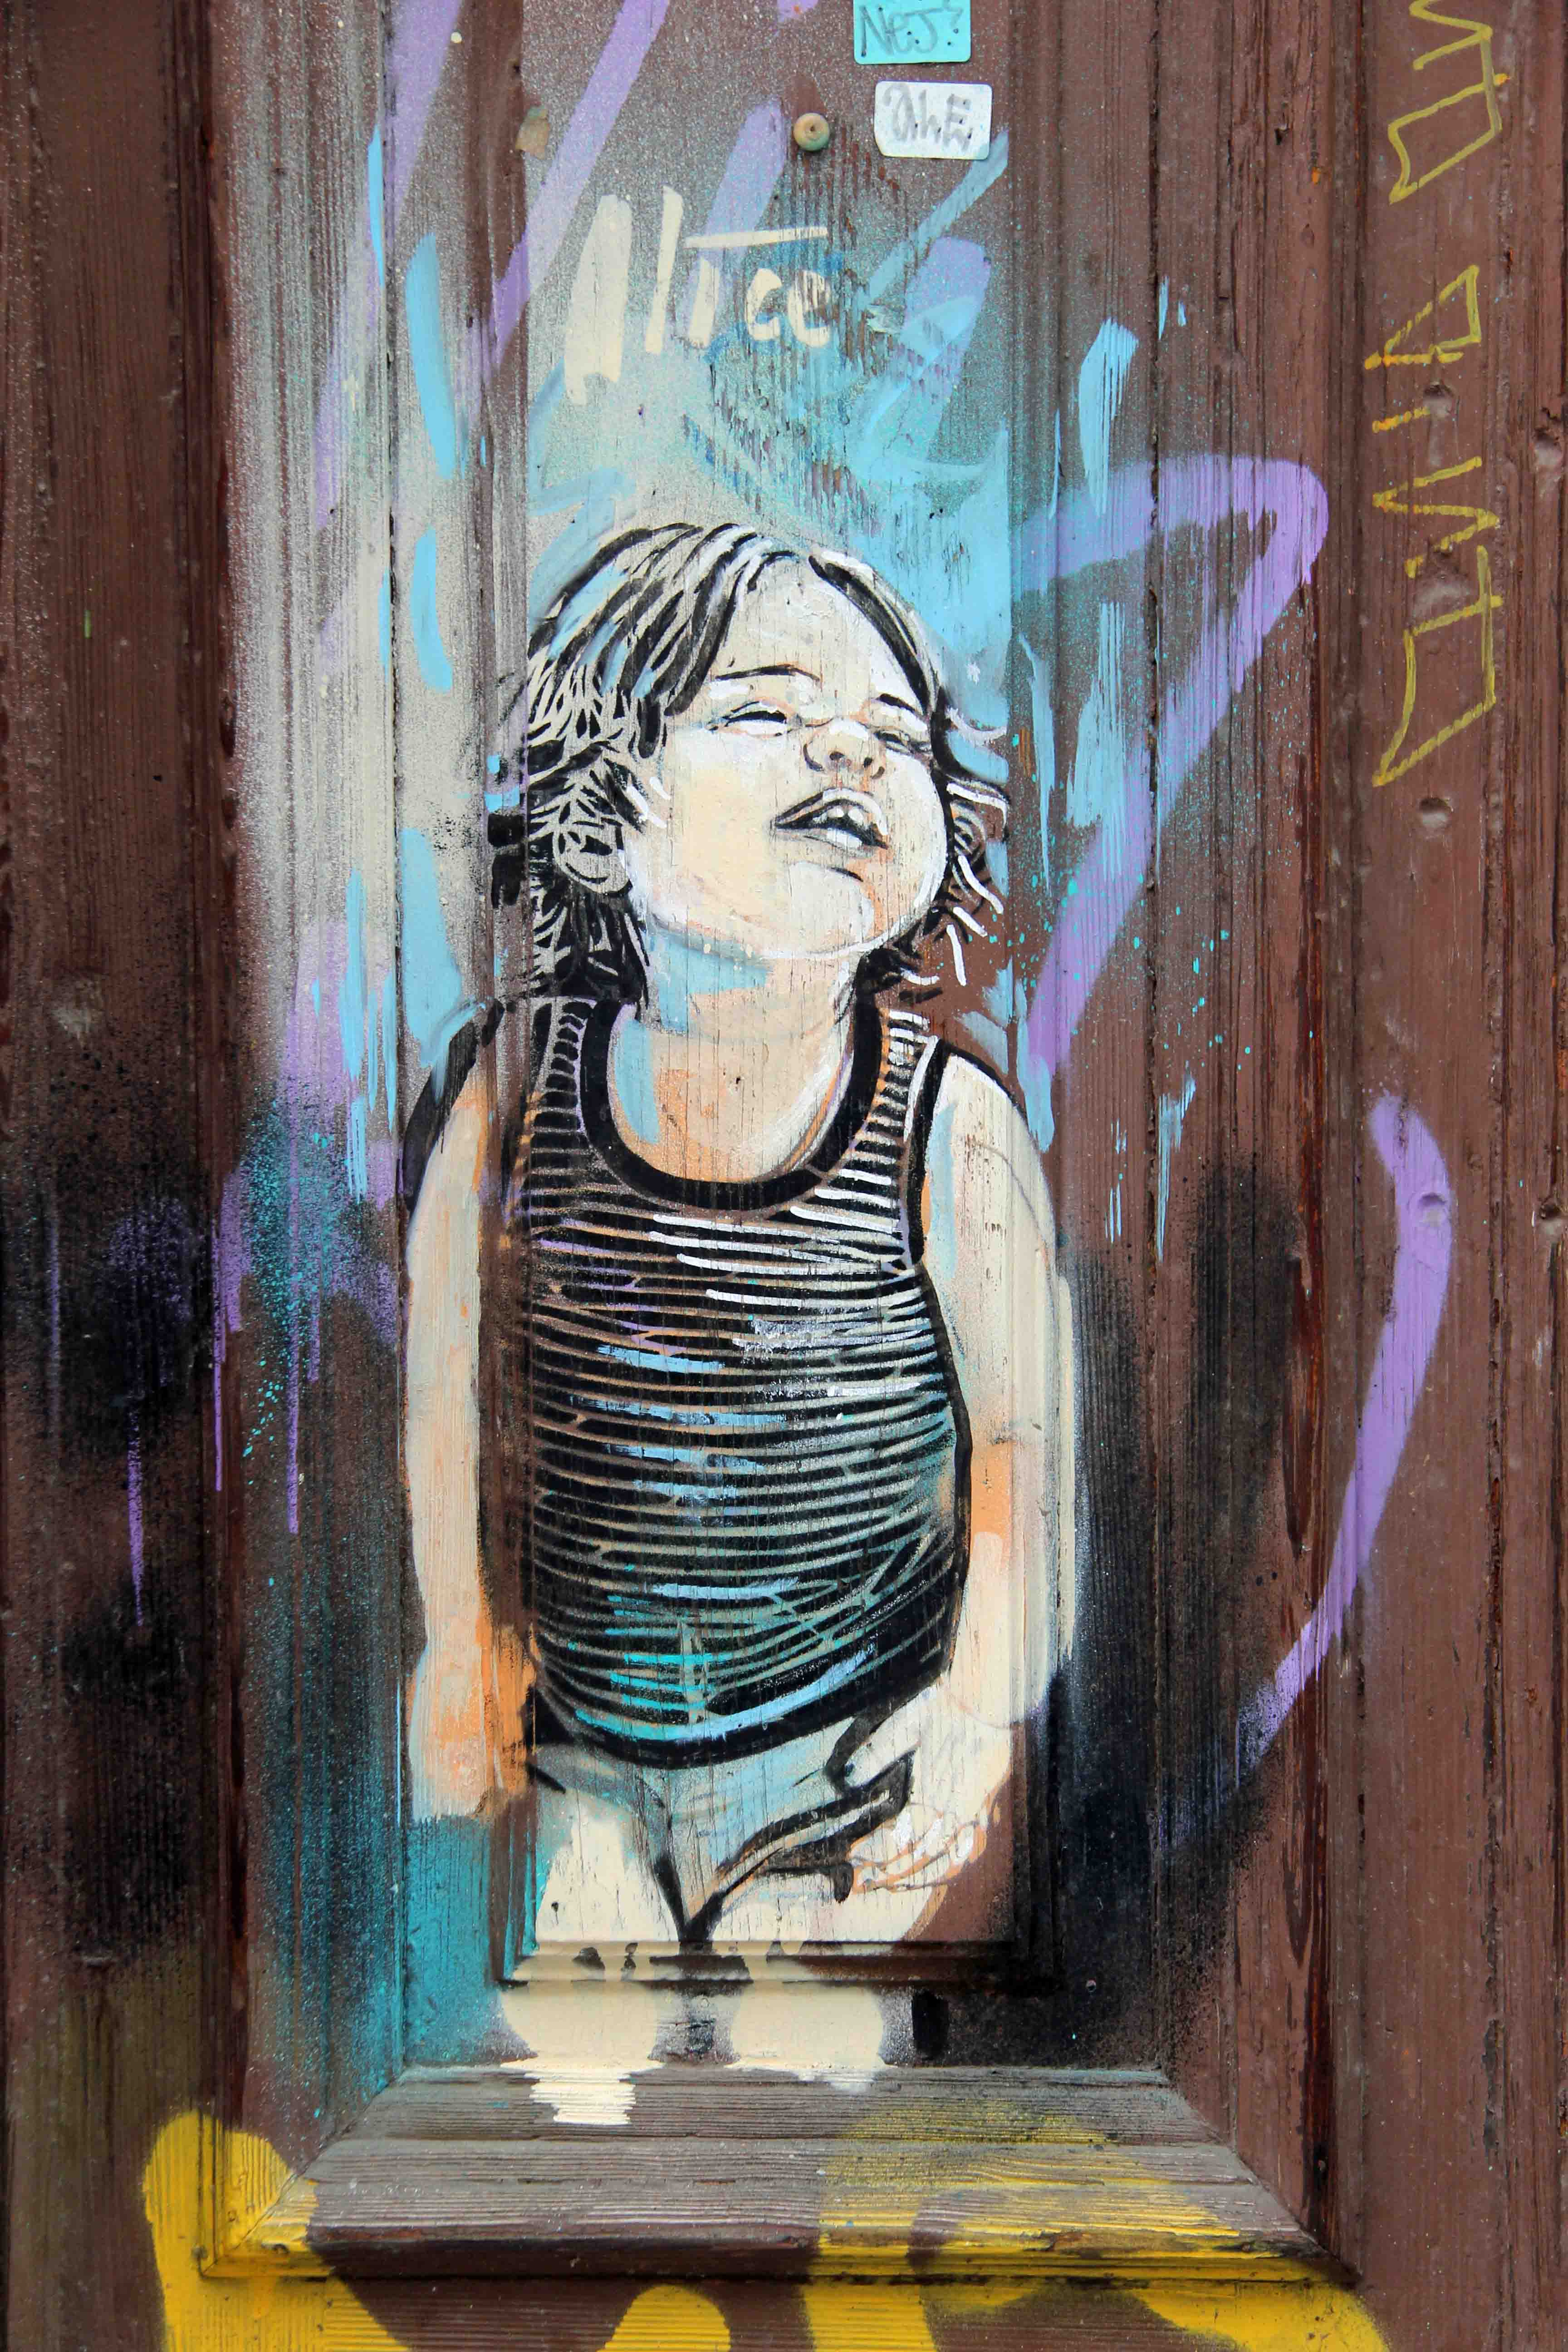 Chubby Cheeks - Street Art by AliCé in Berlin